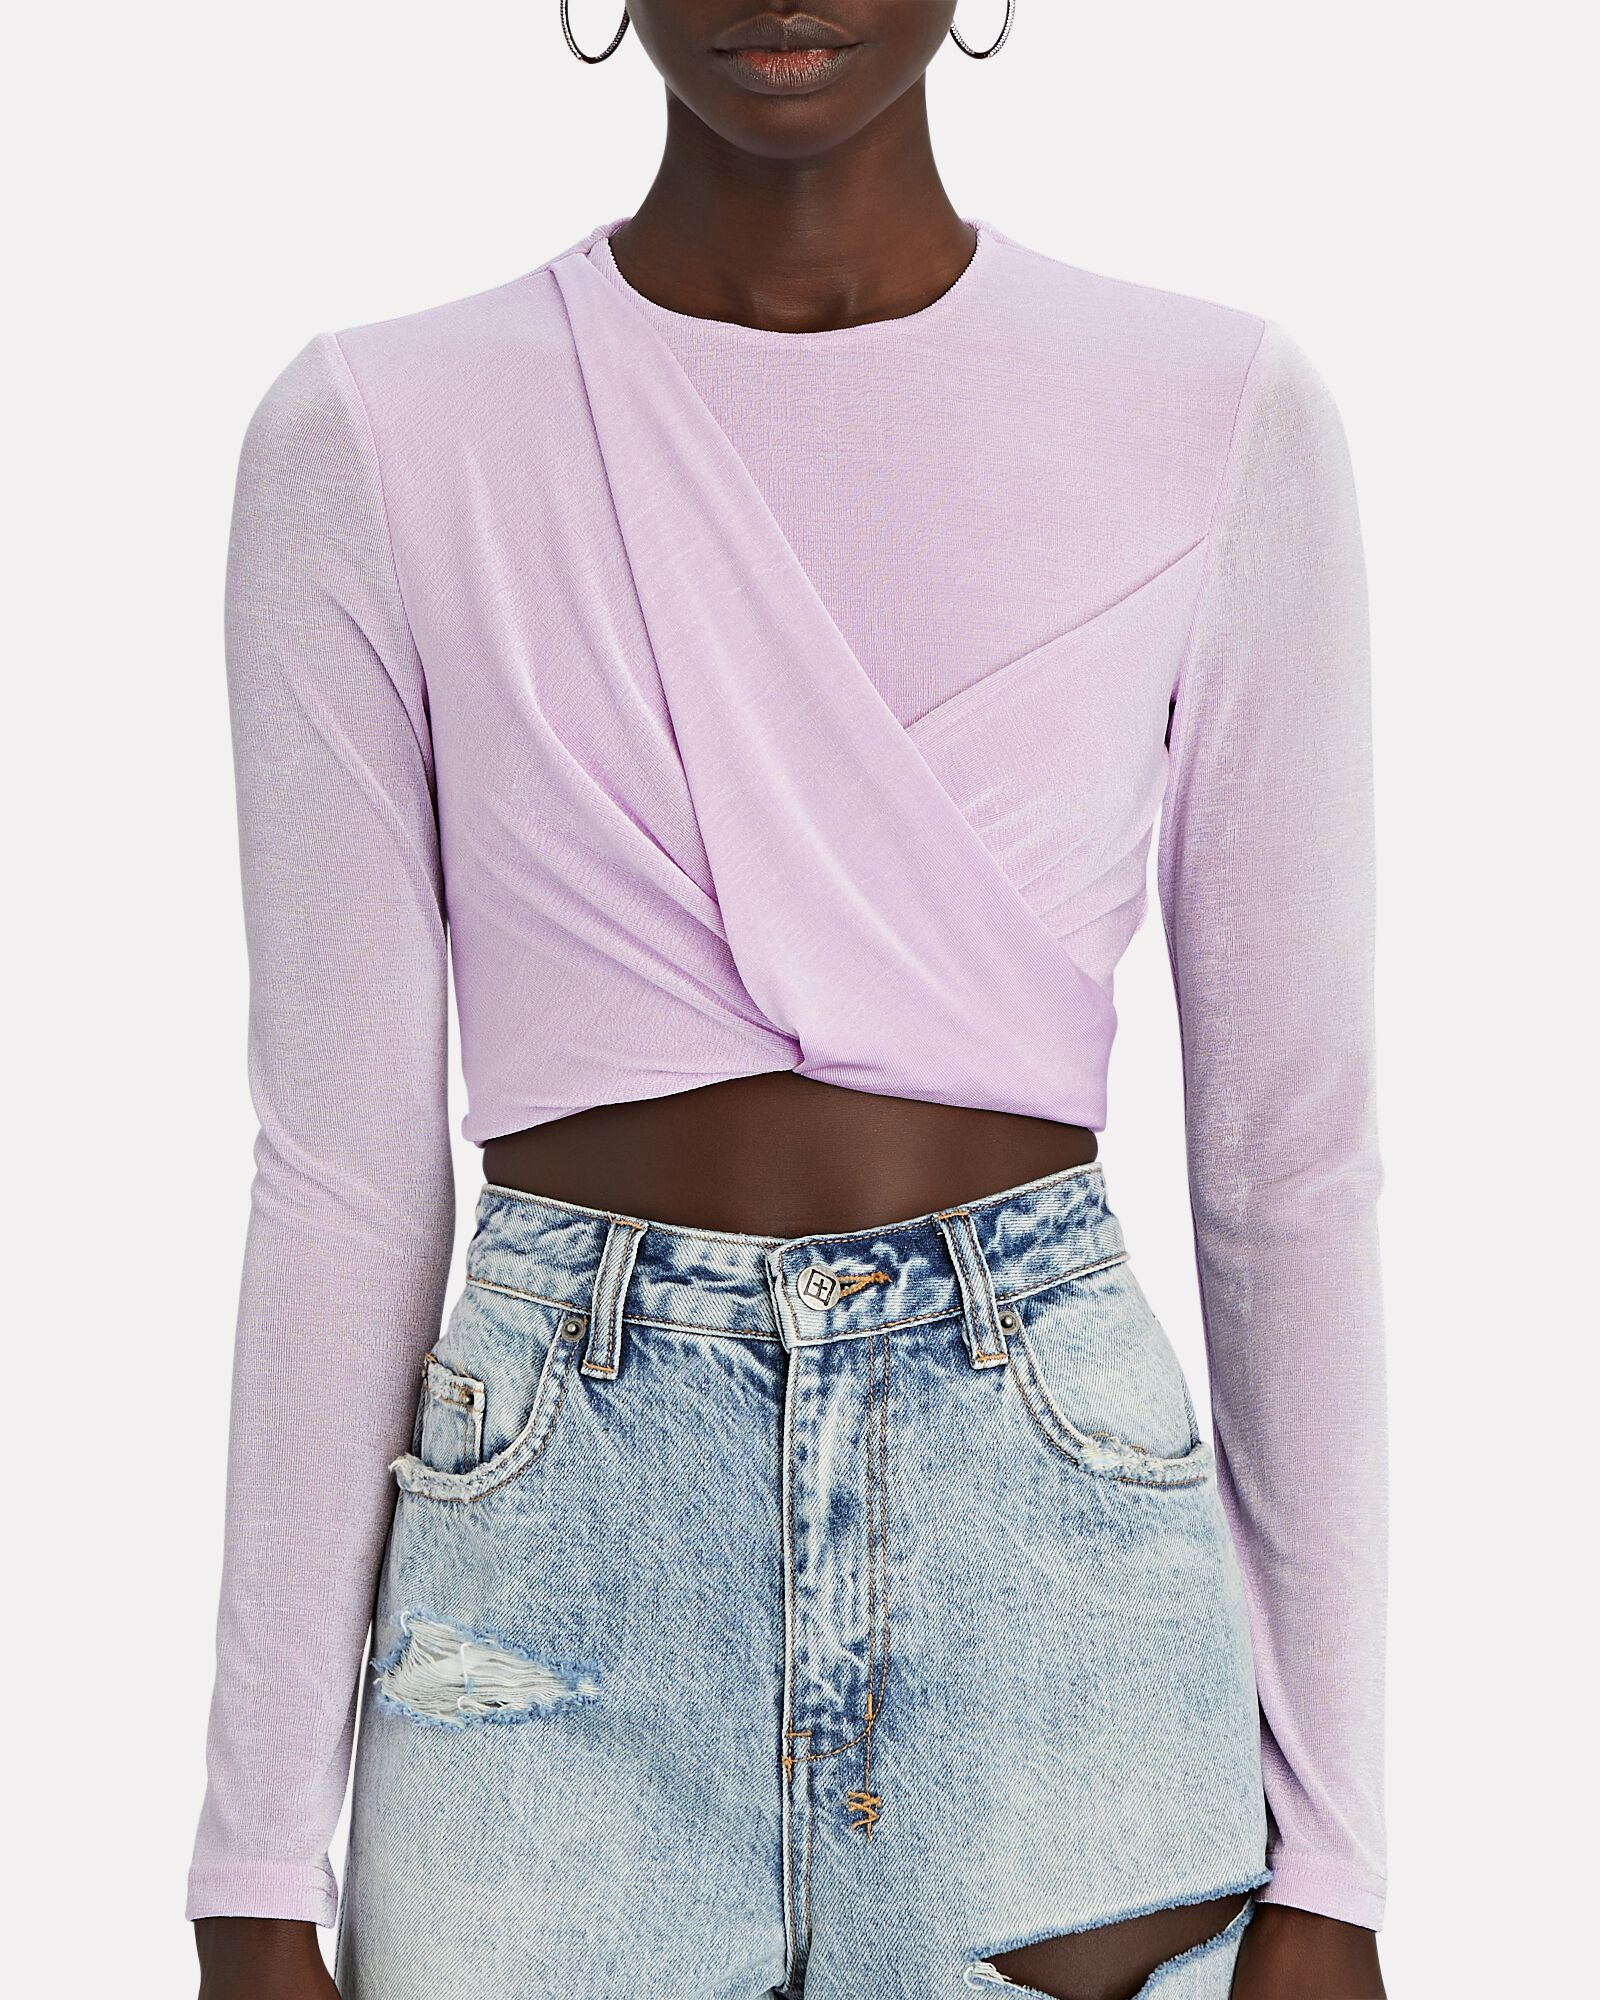 Evelyn Twisted Knit Crop Top, PURPLE-LT, hi-res